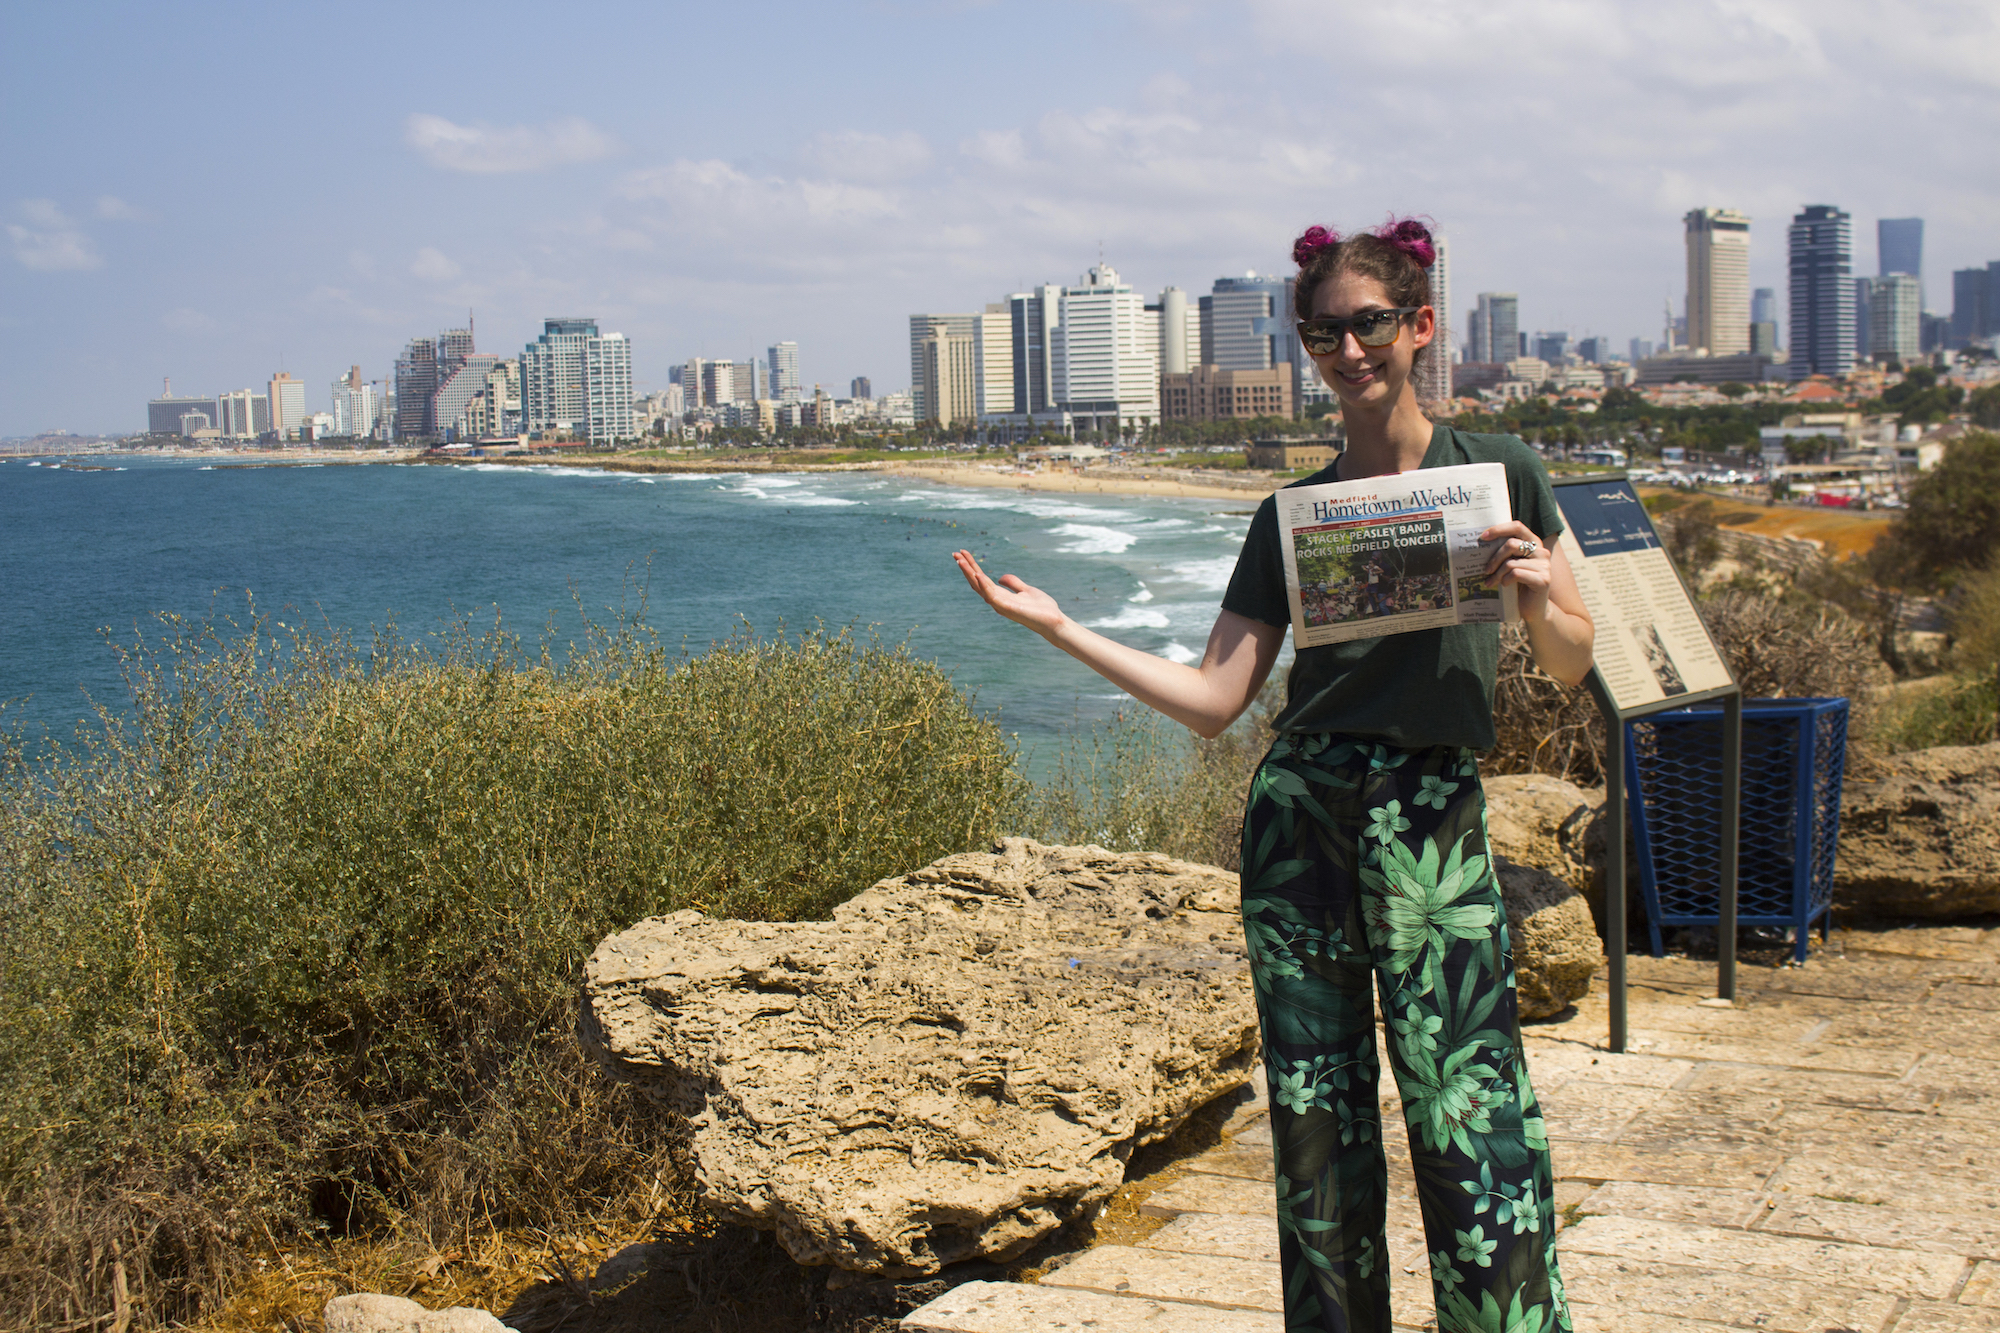 Geena Matuson reppin' Hometown Weekly Newspapers in Tel Aviv-Yafo, Israel, 2017. See more #travel photography at thegirlmirage.com @geenamatuson.